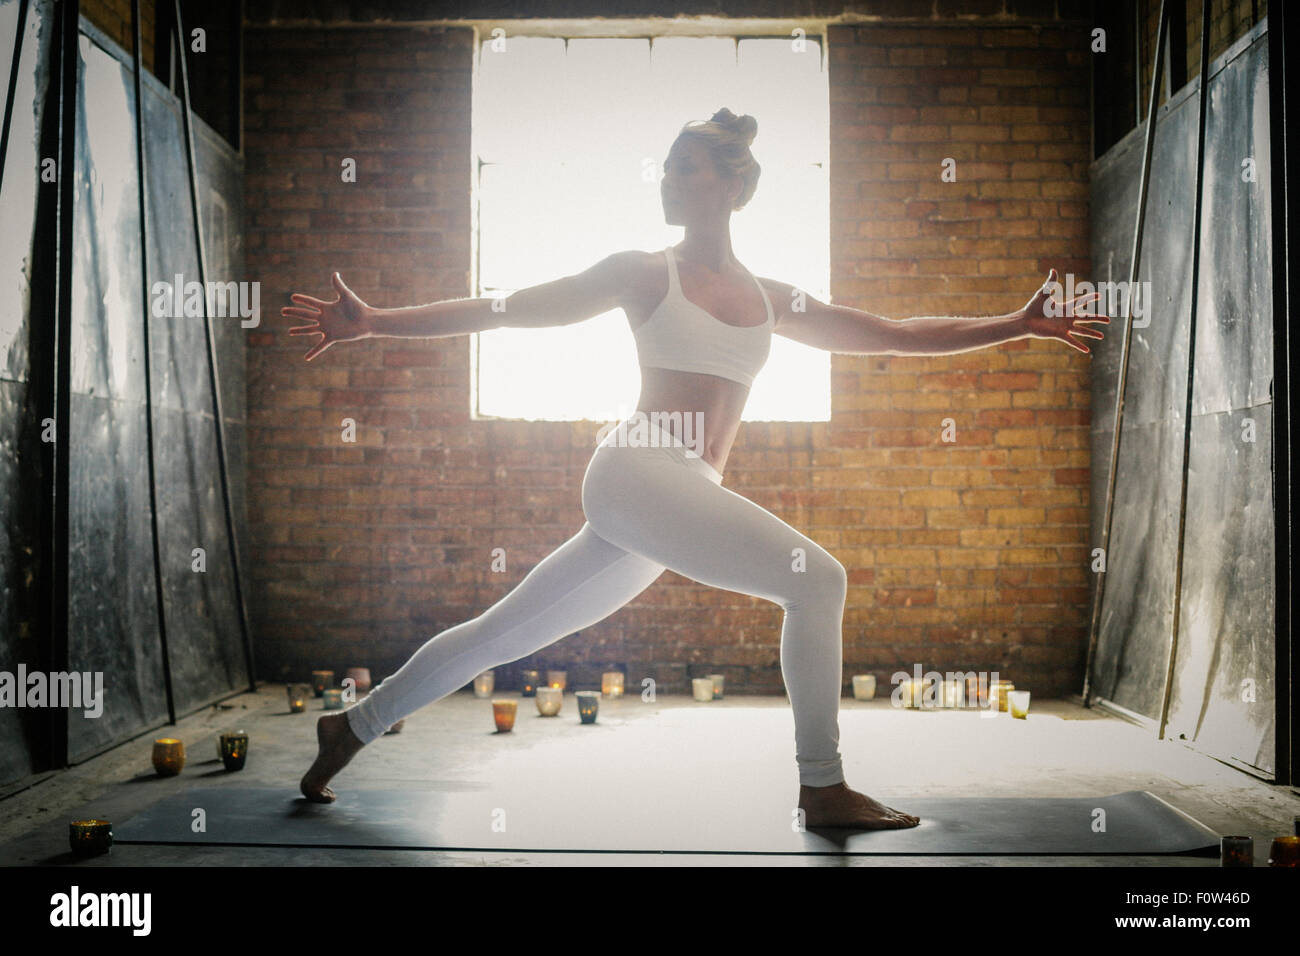 A blonde woman standing on a yoga mat surrounded by candles, doing yoga, her arms outstretched. - Stock Image